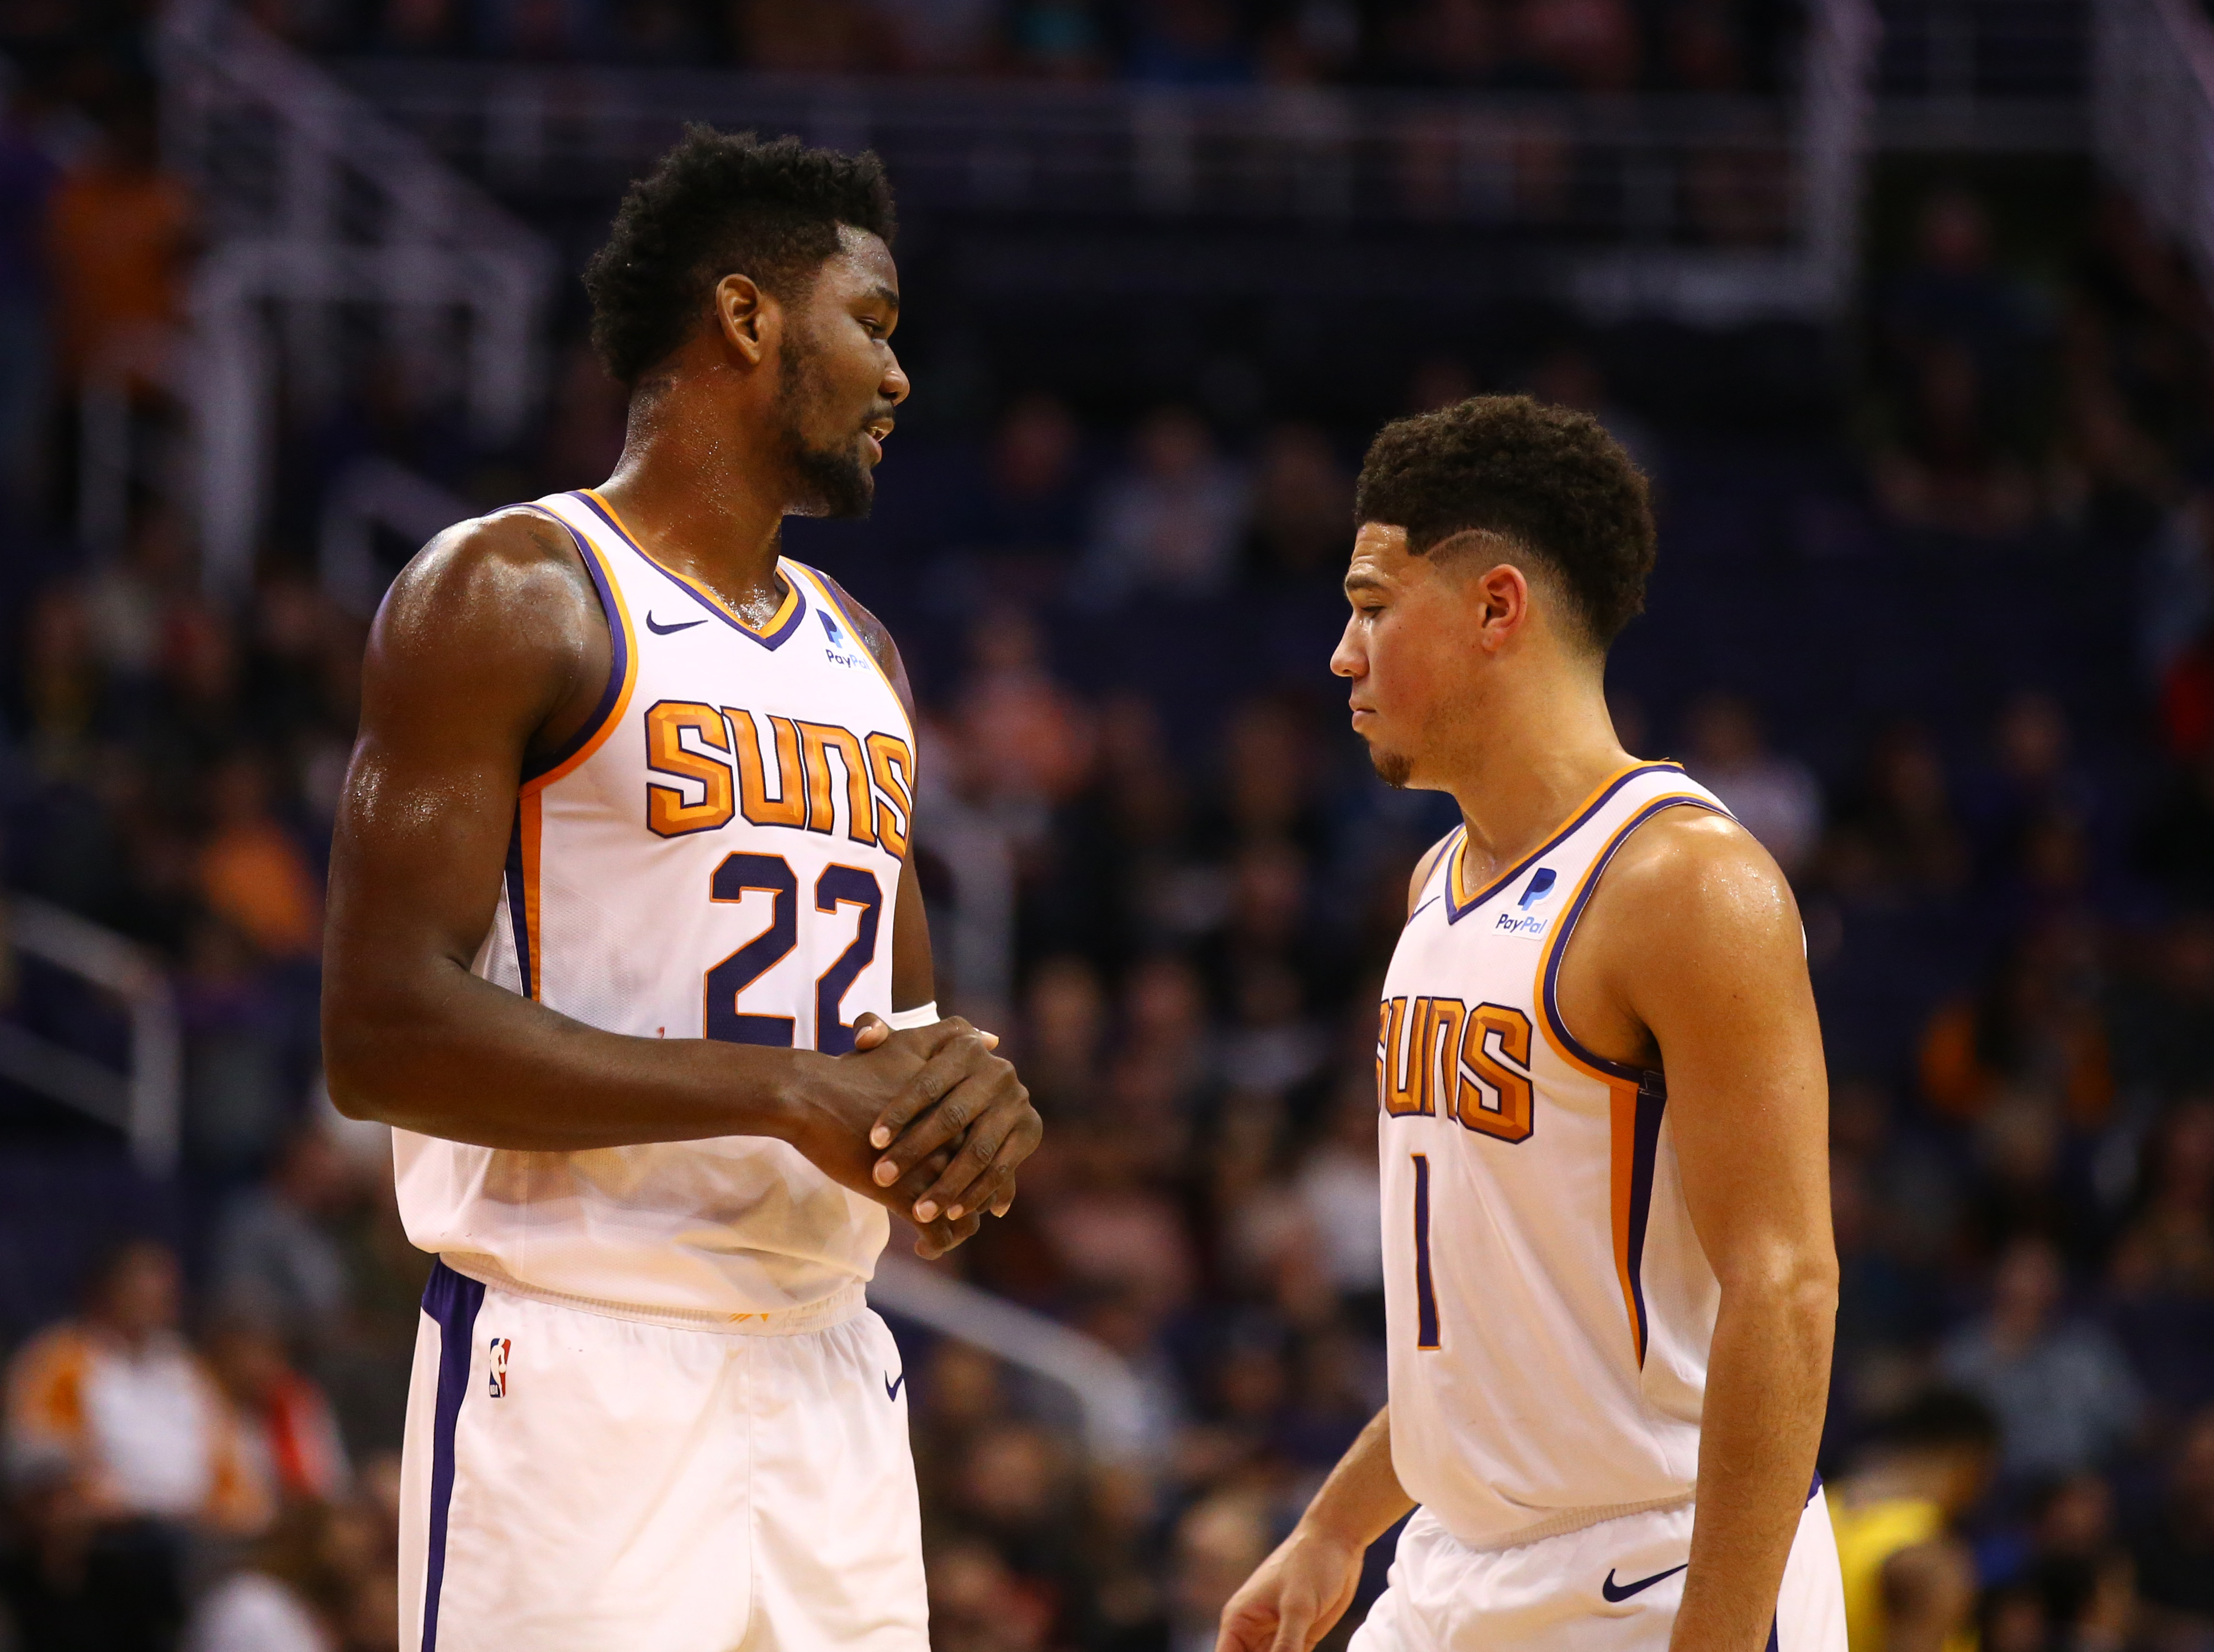 Suns rumors indicate dissension between Deandre Ayton, Devin Booker after recent heated argument